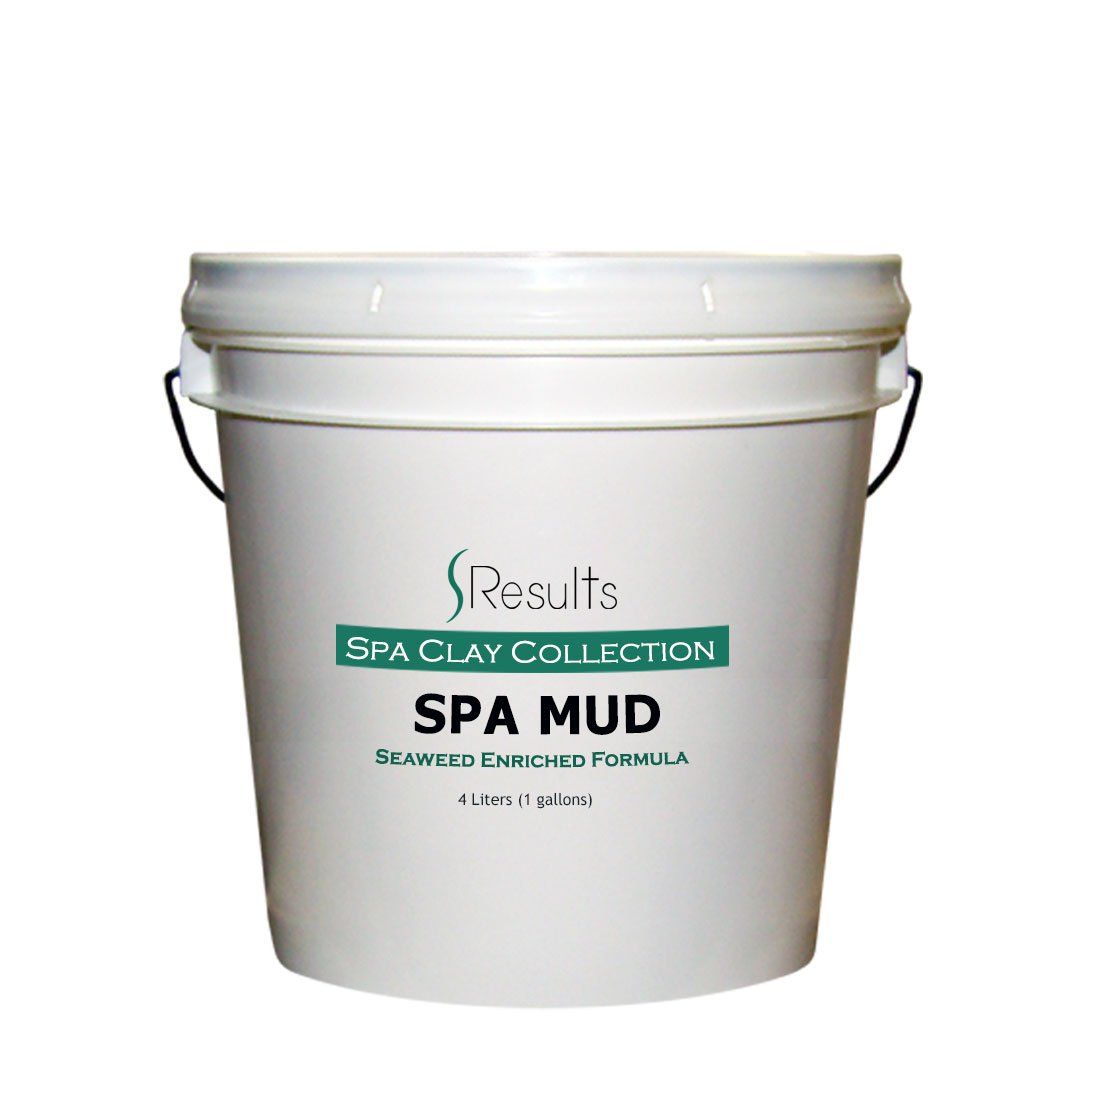 Spa Mud (Seaweed) Body Wrap Detox & Anti-cellulite Slimming Formula - 1 gallon (4 liter)